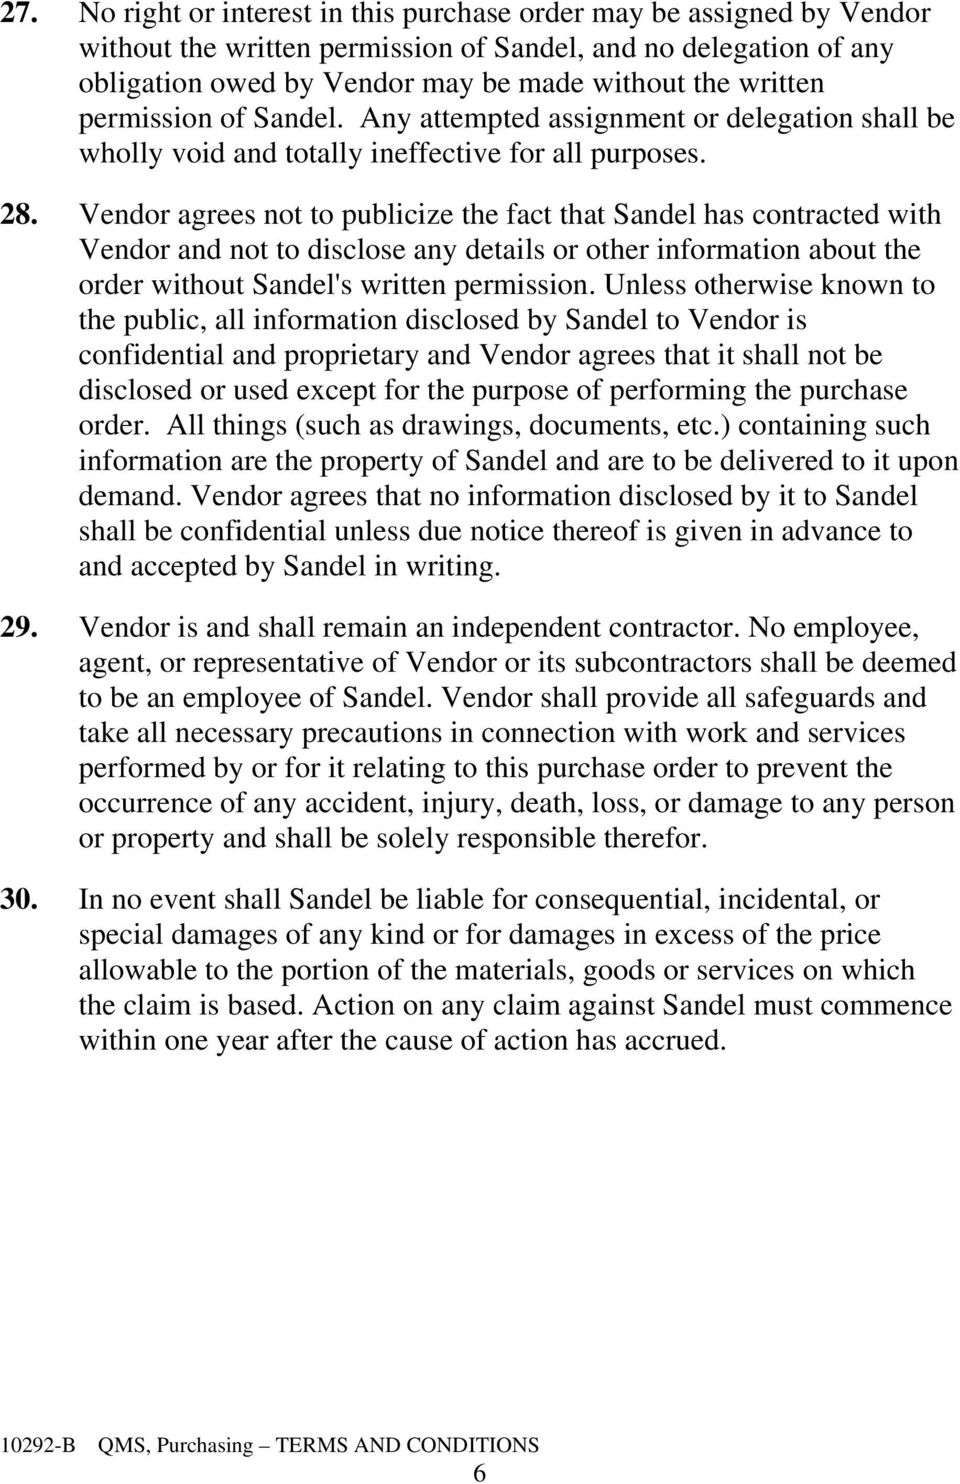 Vendor agrees not to publicize the fact that Sandel has contracted with Vendor and not to disclose any details or other information about the order without Sandel's written permission.